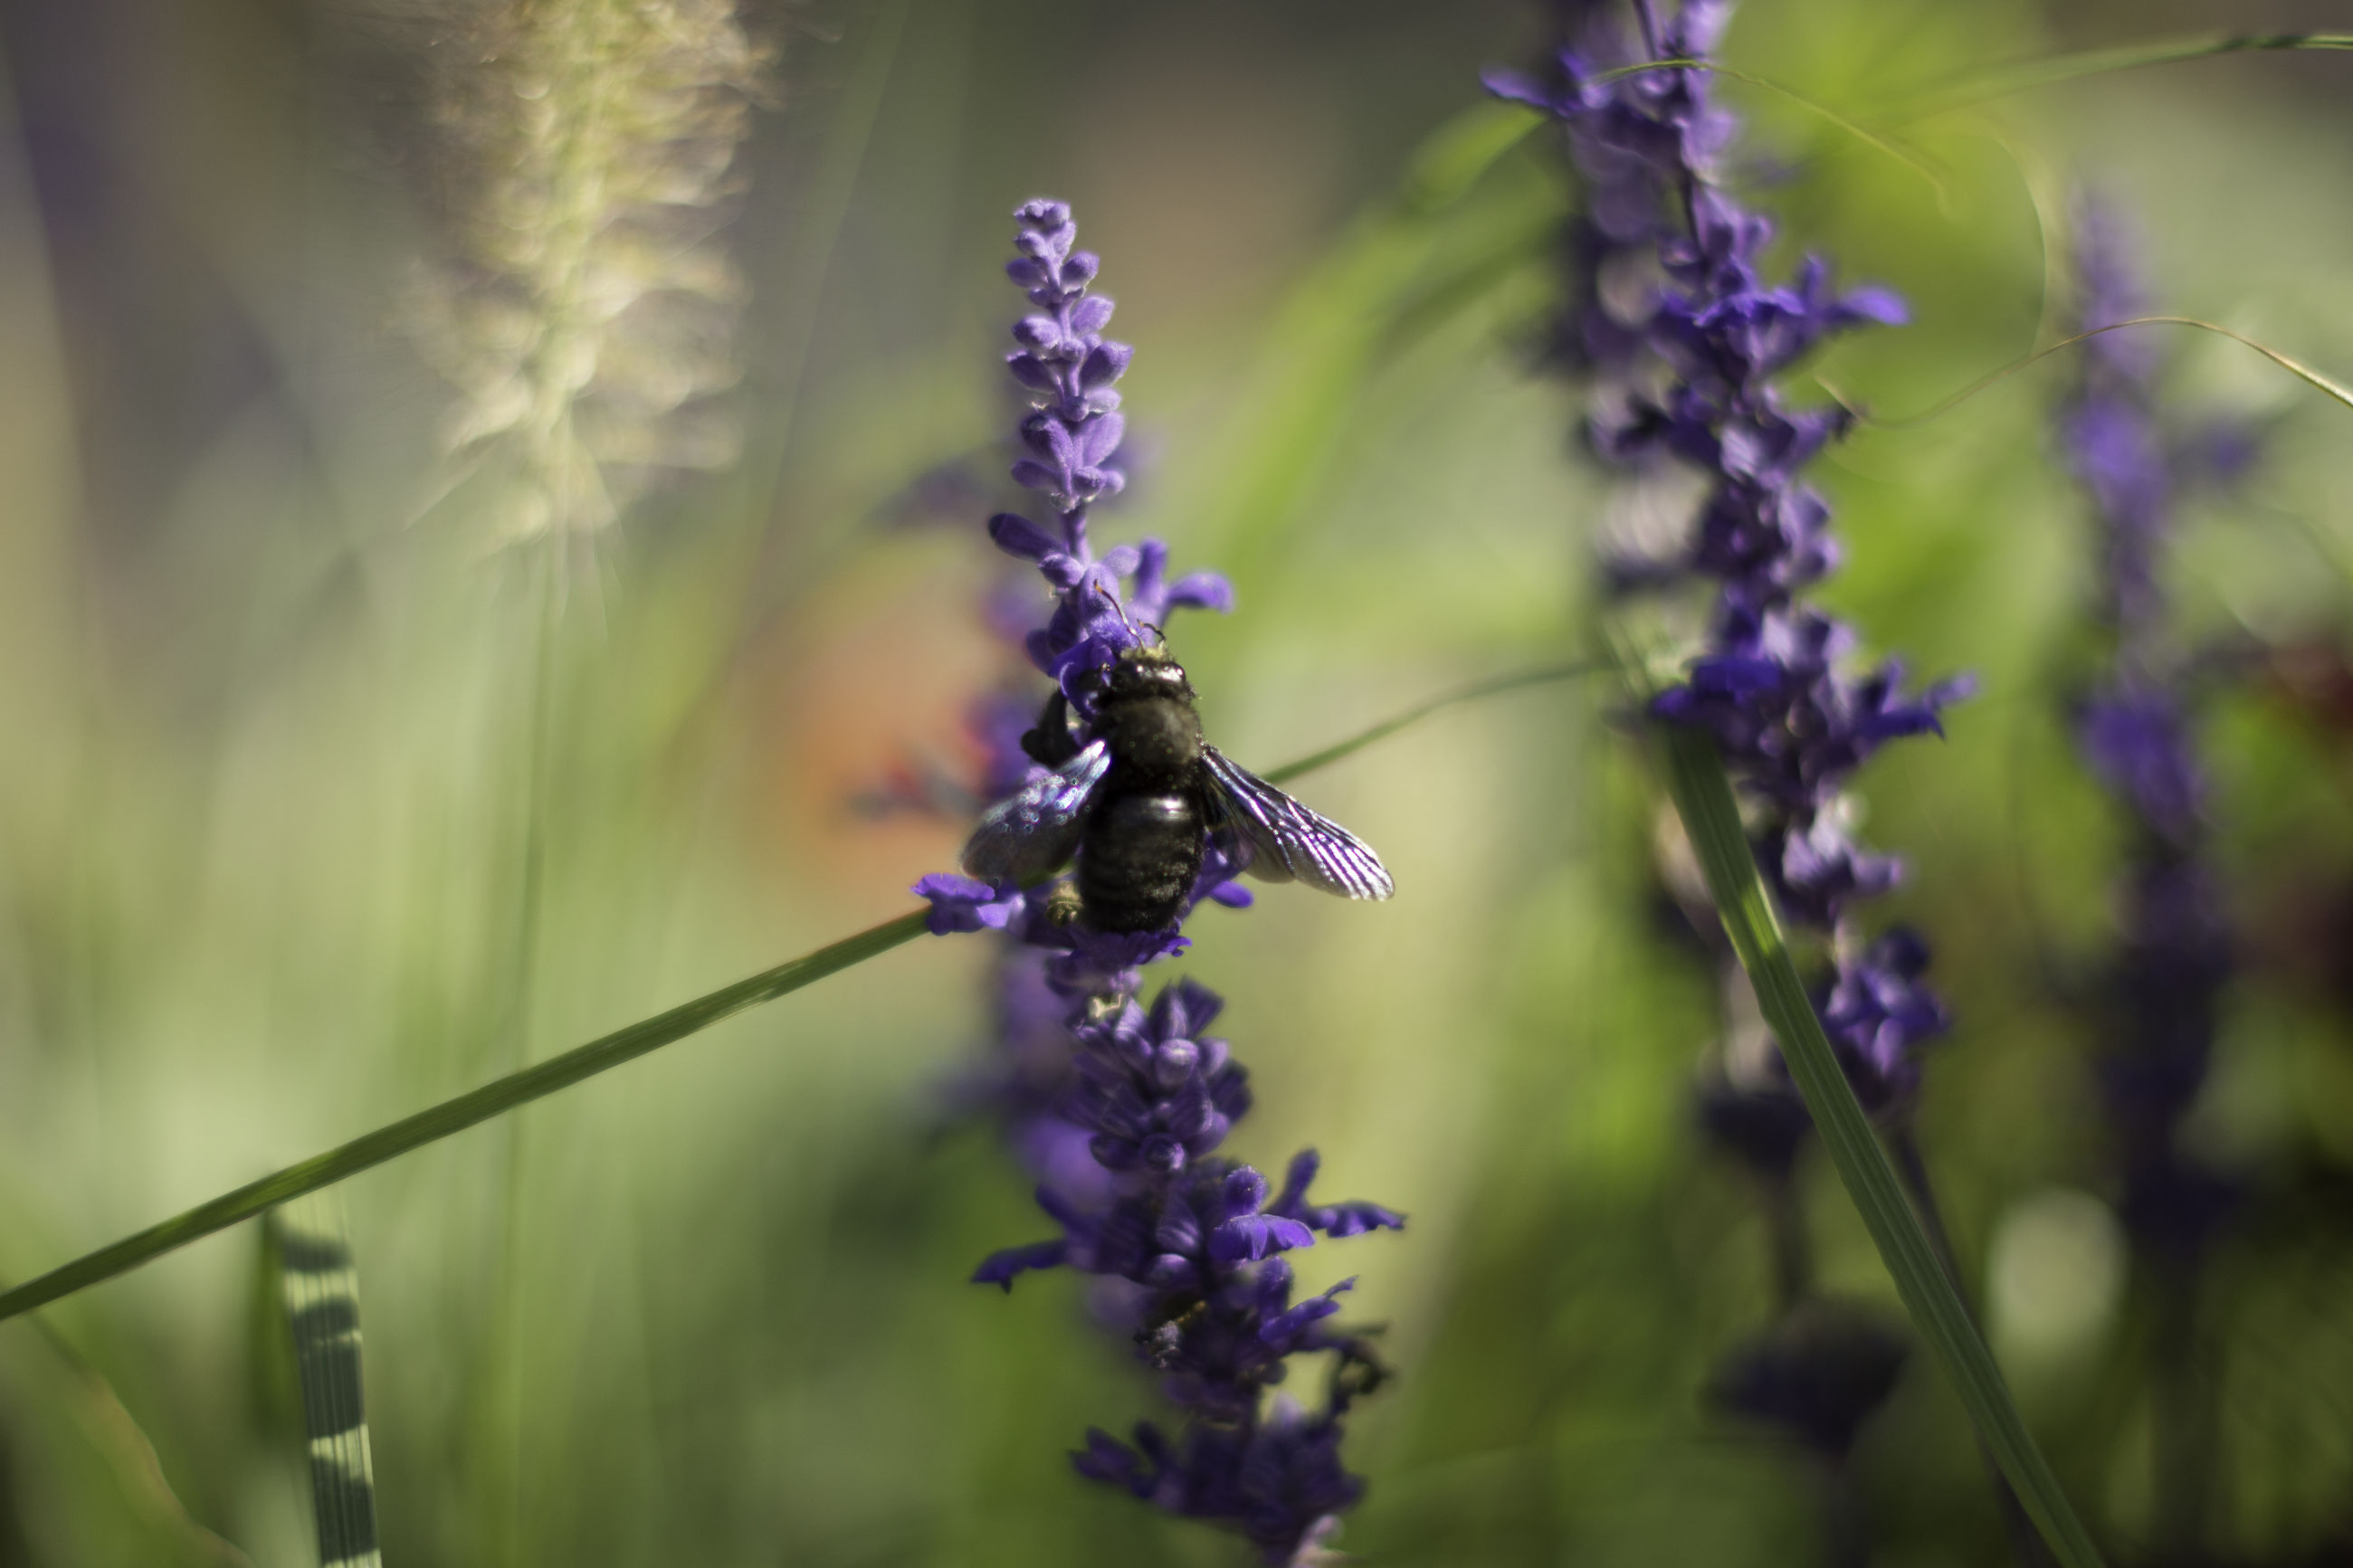 nature, flower, fragility, beauty in nature, growth, plant, freshness, purple, insect, animal themes, one animal, no people, close-up, animals in the wild, outdoors, day, pollination, flower head